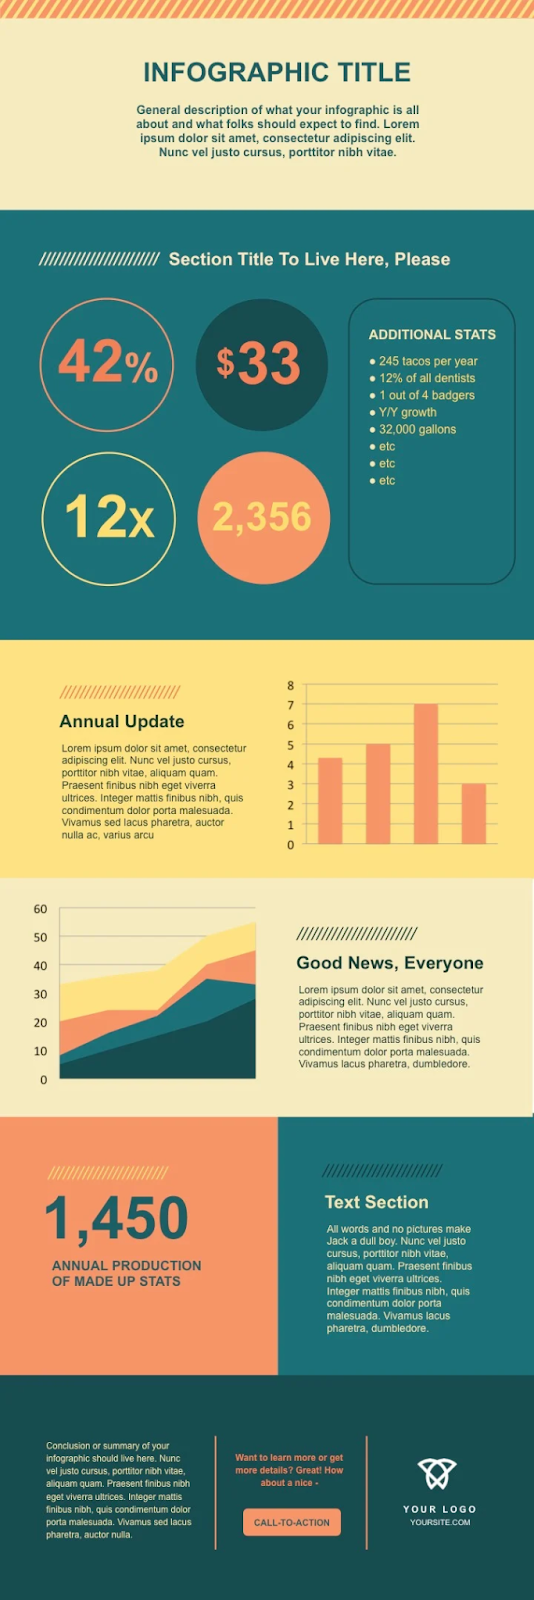 Infographic template from HubSpot.